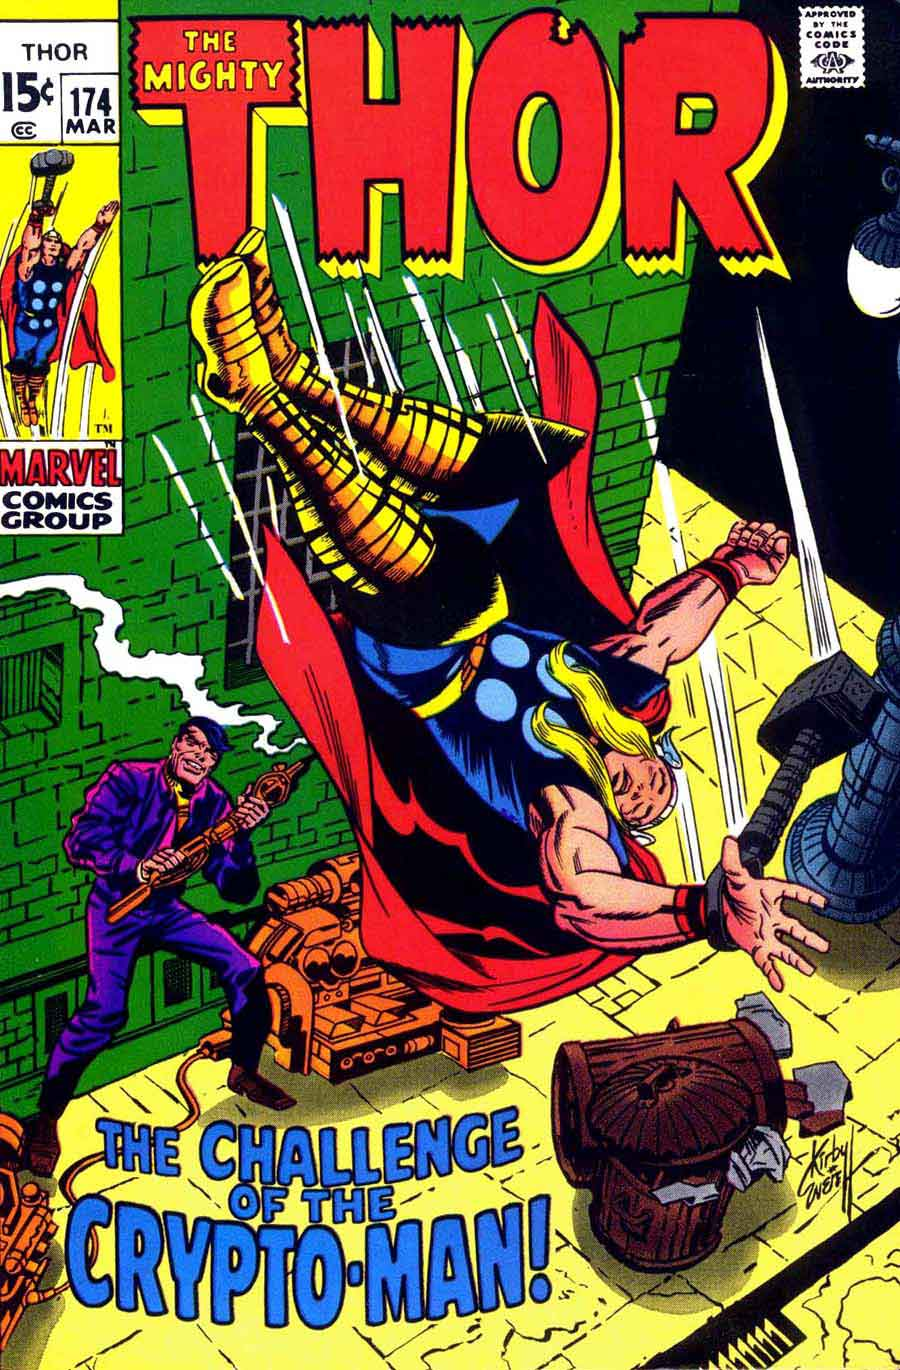 Thor v1 #174 marvel comic book cover art by Jack Kirby